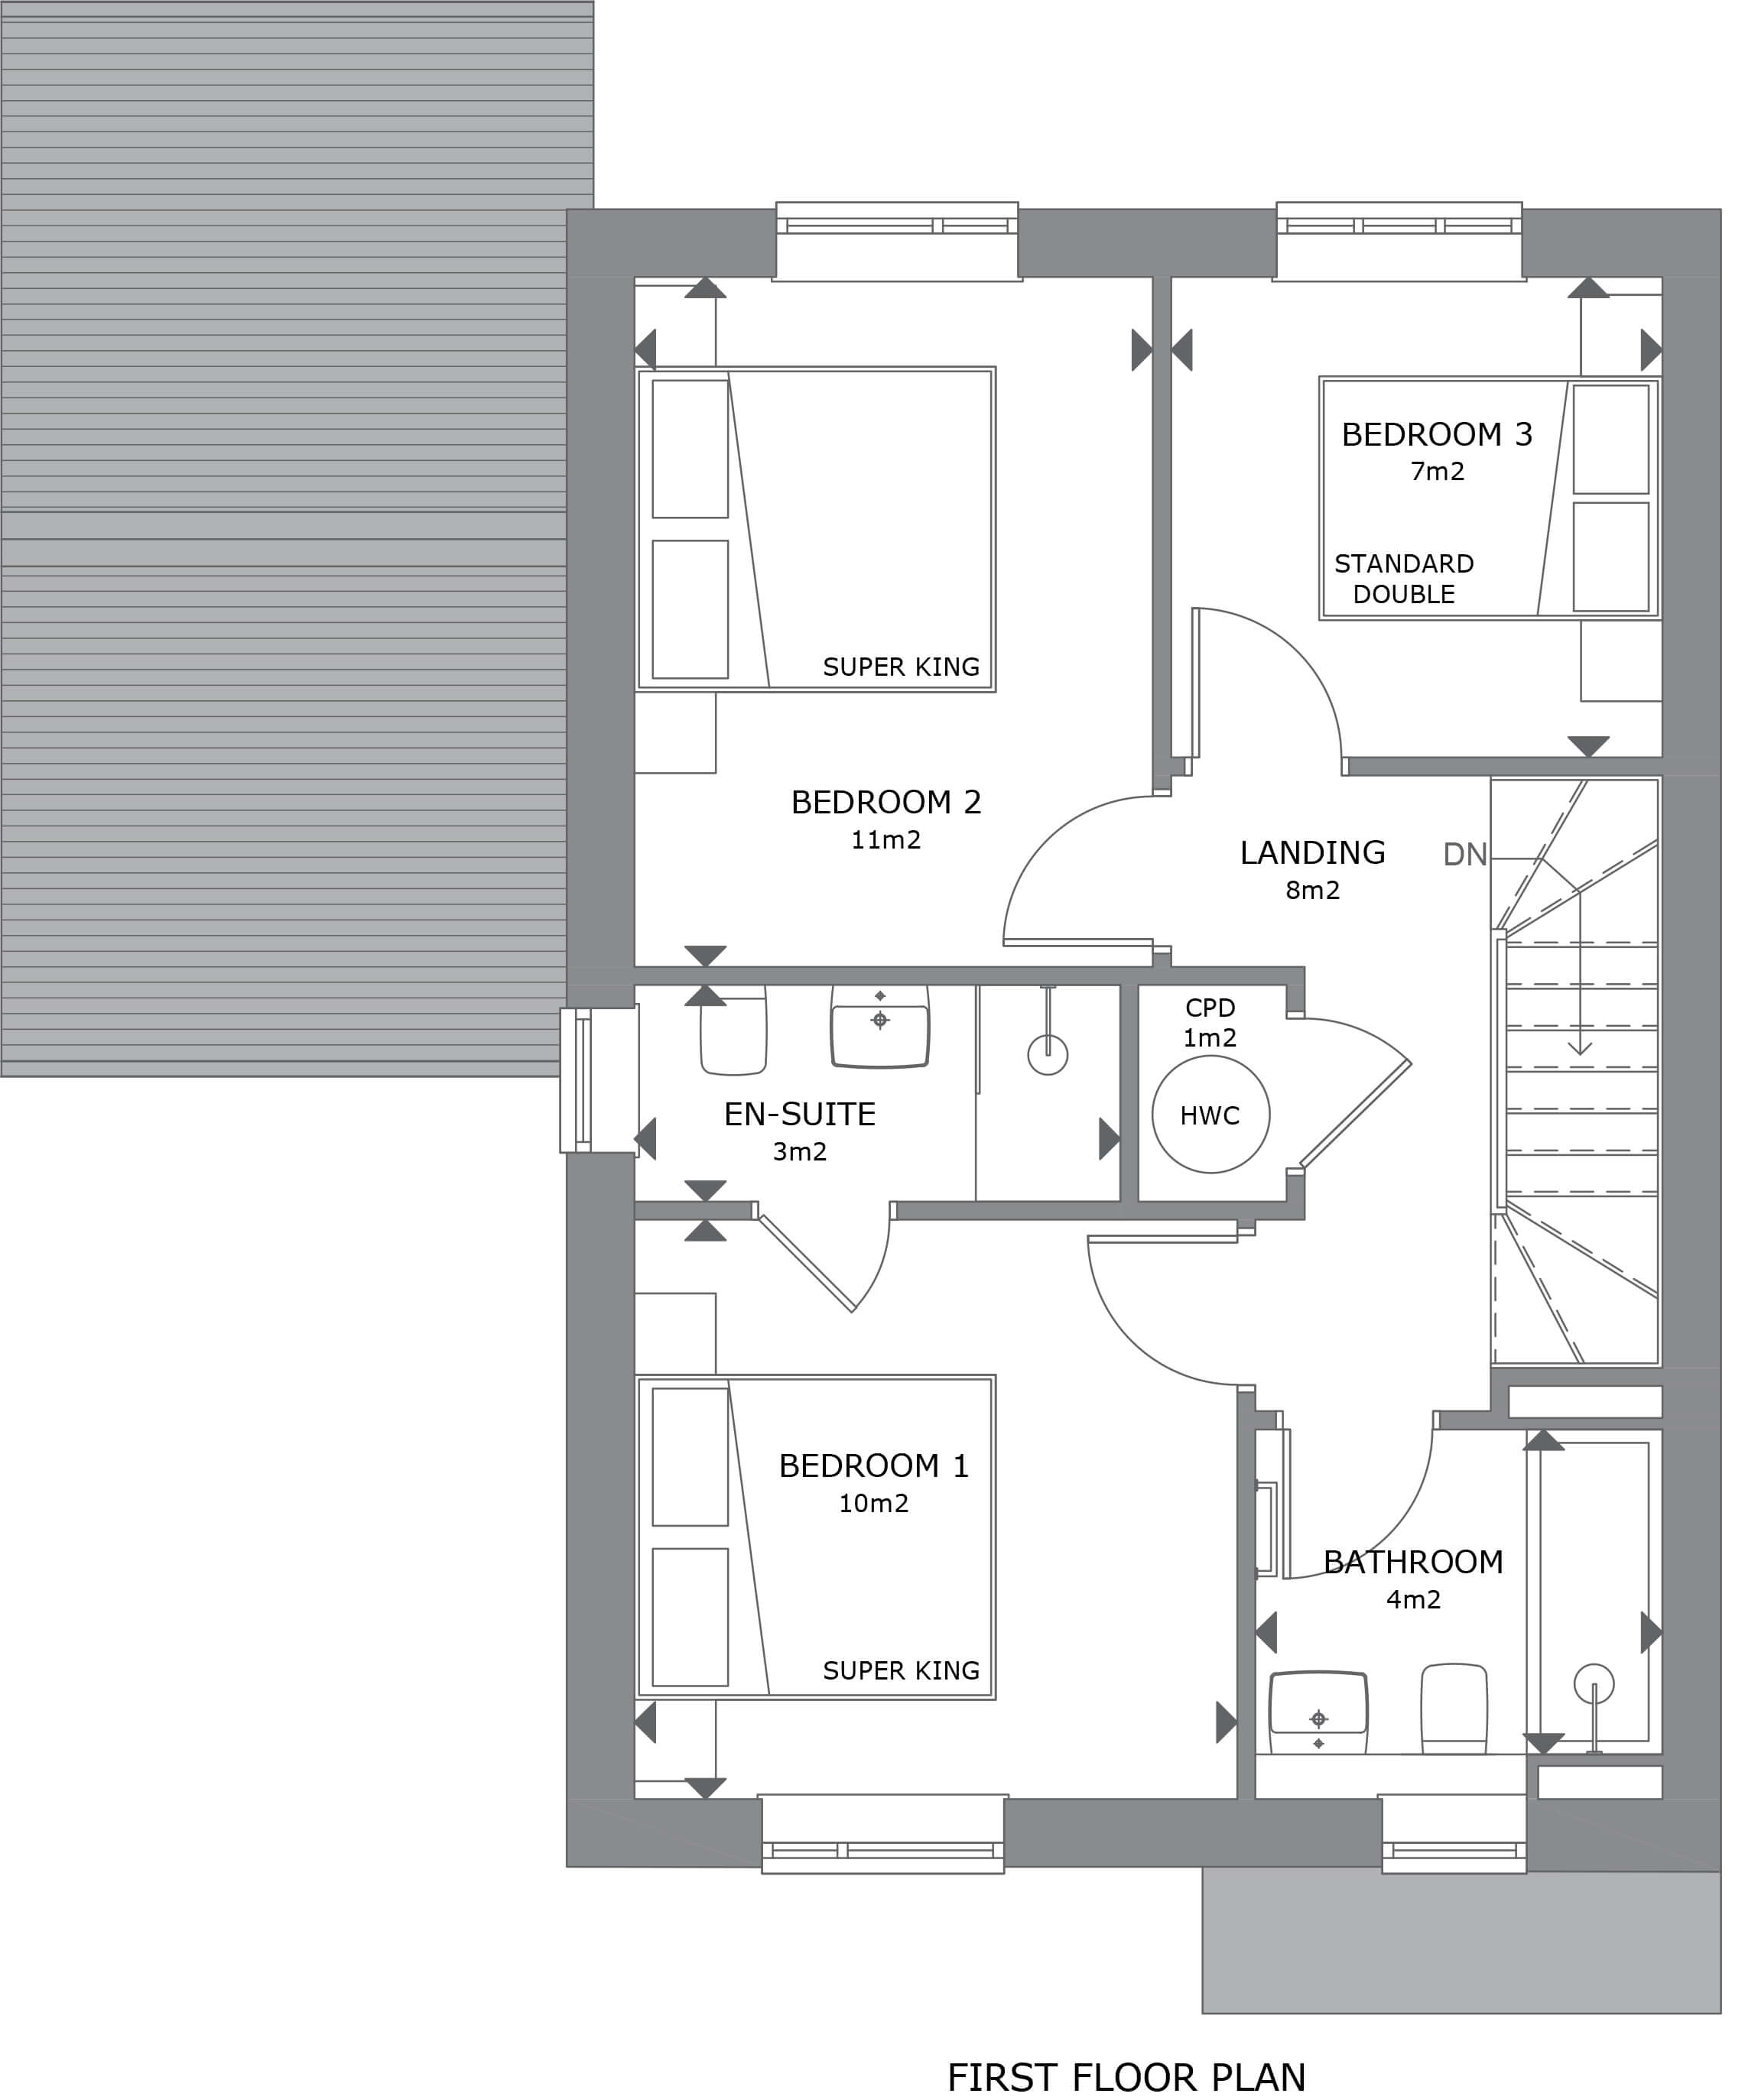 013 Crantock House 39 First Floor Plan Marketing - House 31 - 3 Bedroom Semi-Detached Home